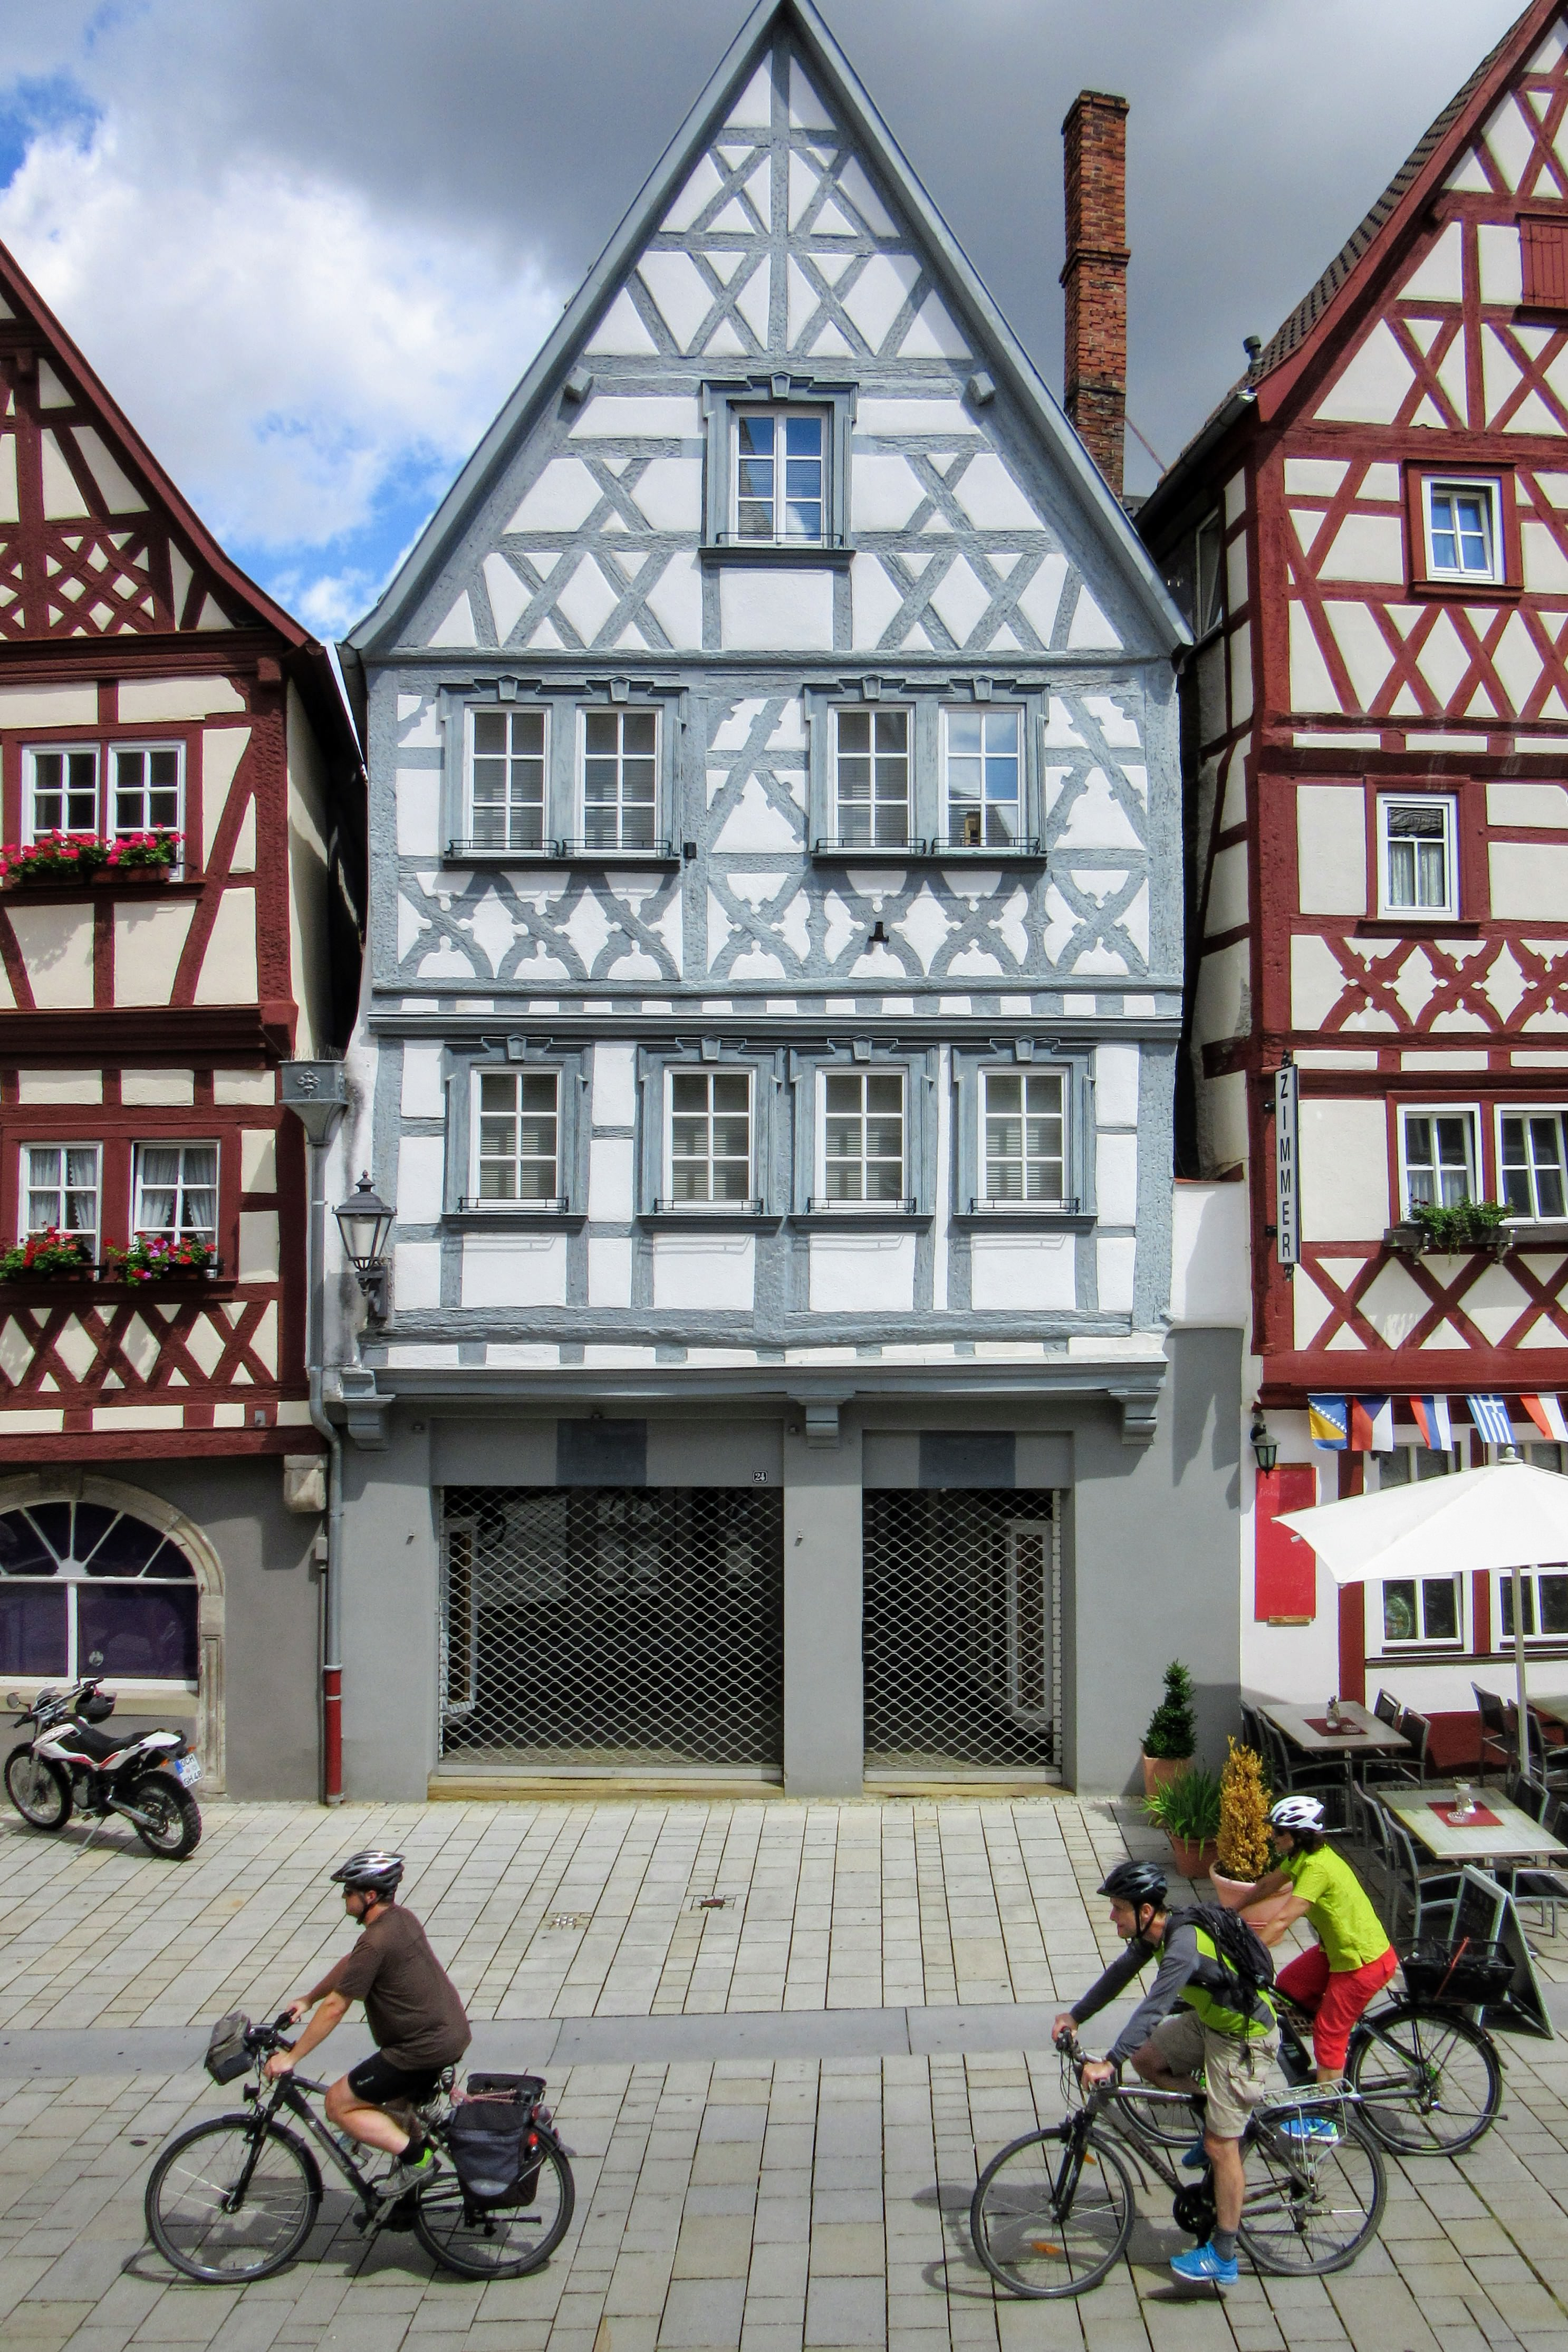 Half-timbered houses in Ochsenfurt. | Missing Germany